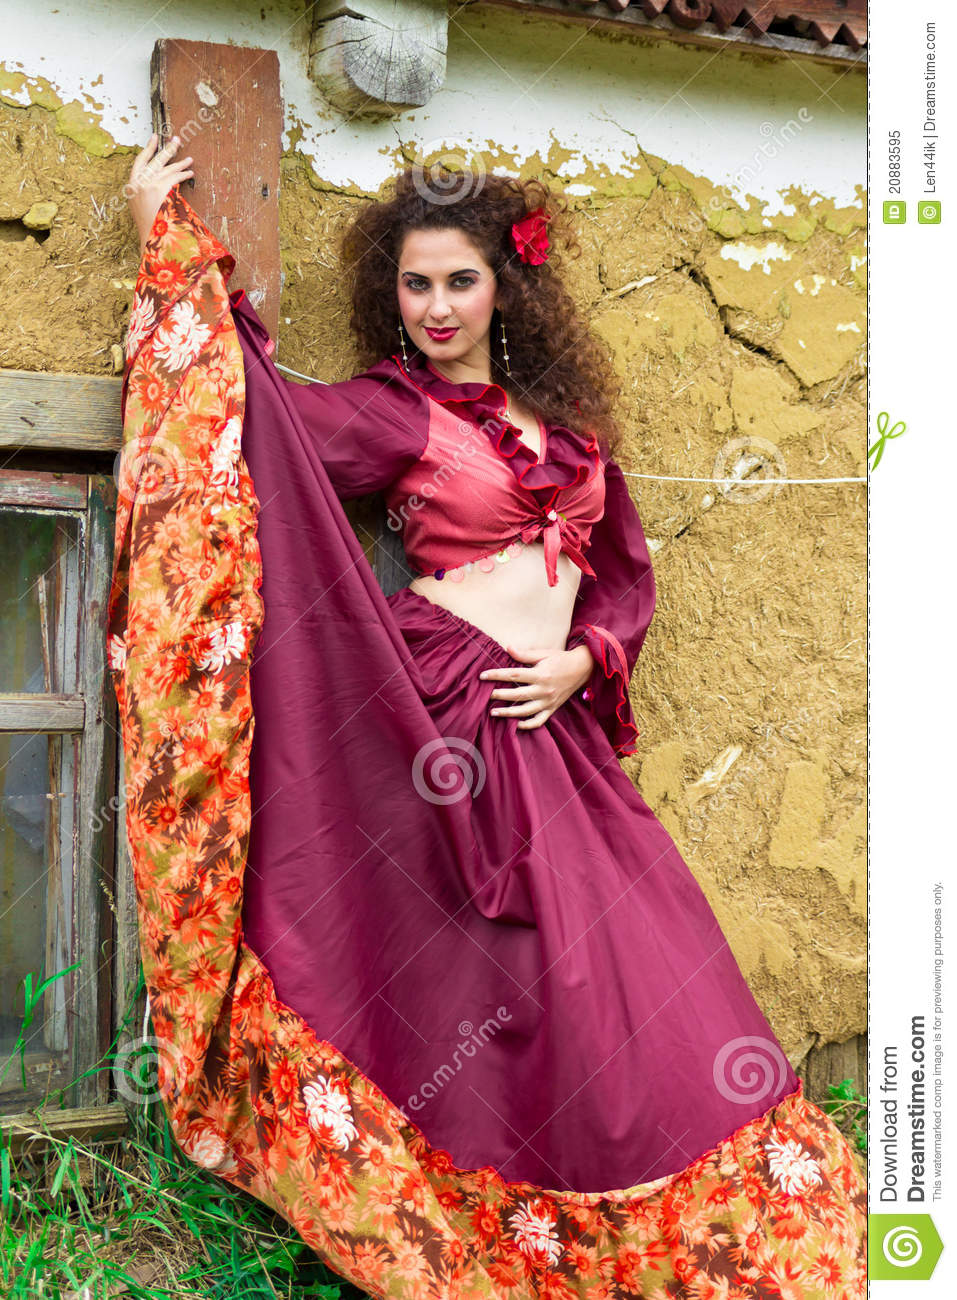 Portrait Of Beautiful Gypsy Woman Stock Image - Image of ...